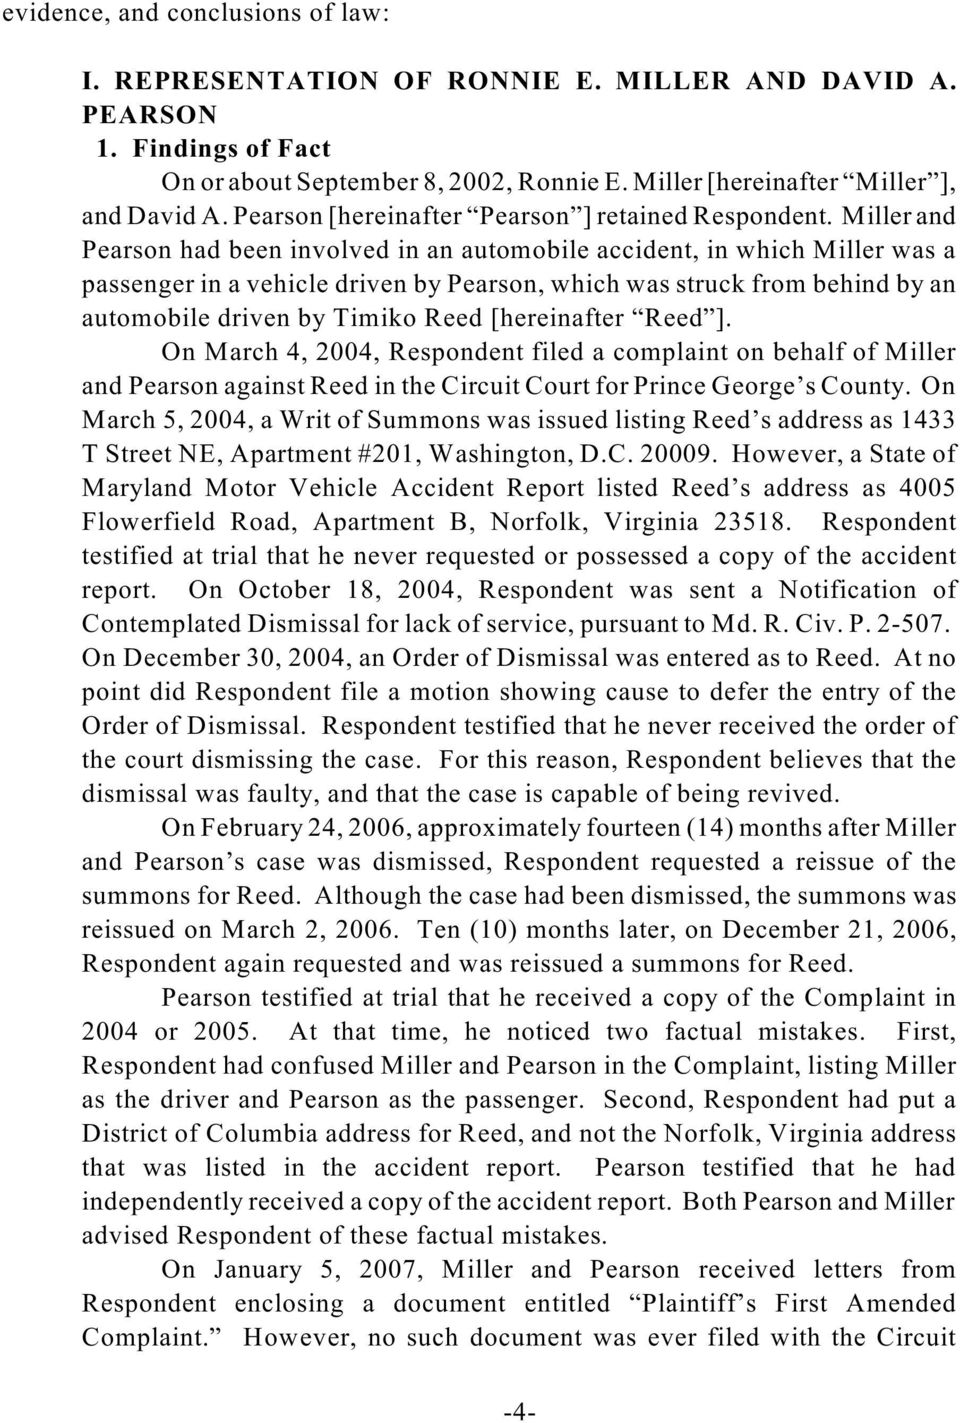 Miller and Pearson had been involved in an automobile accident, in which Miller was a passenger in a vehicle driven by Pearson, which was struck from behind by an automobile driven by Timiko Reed